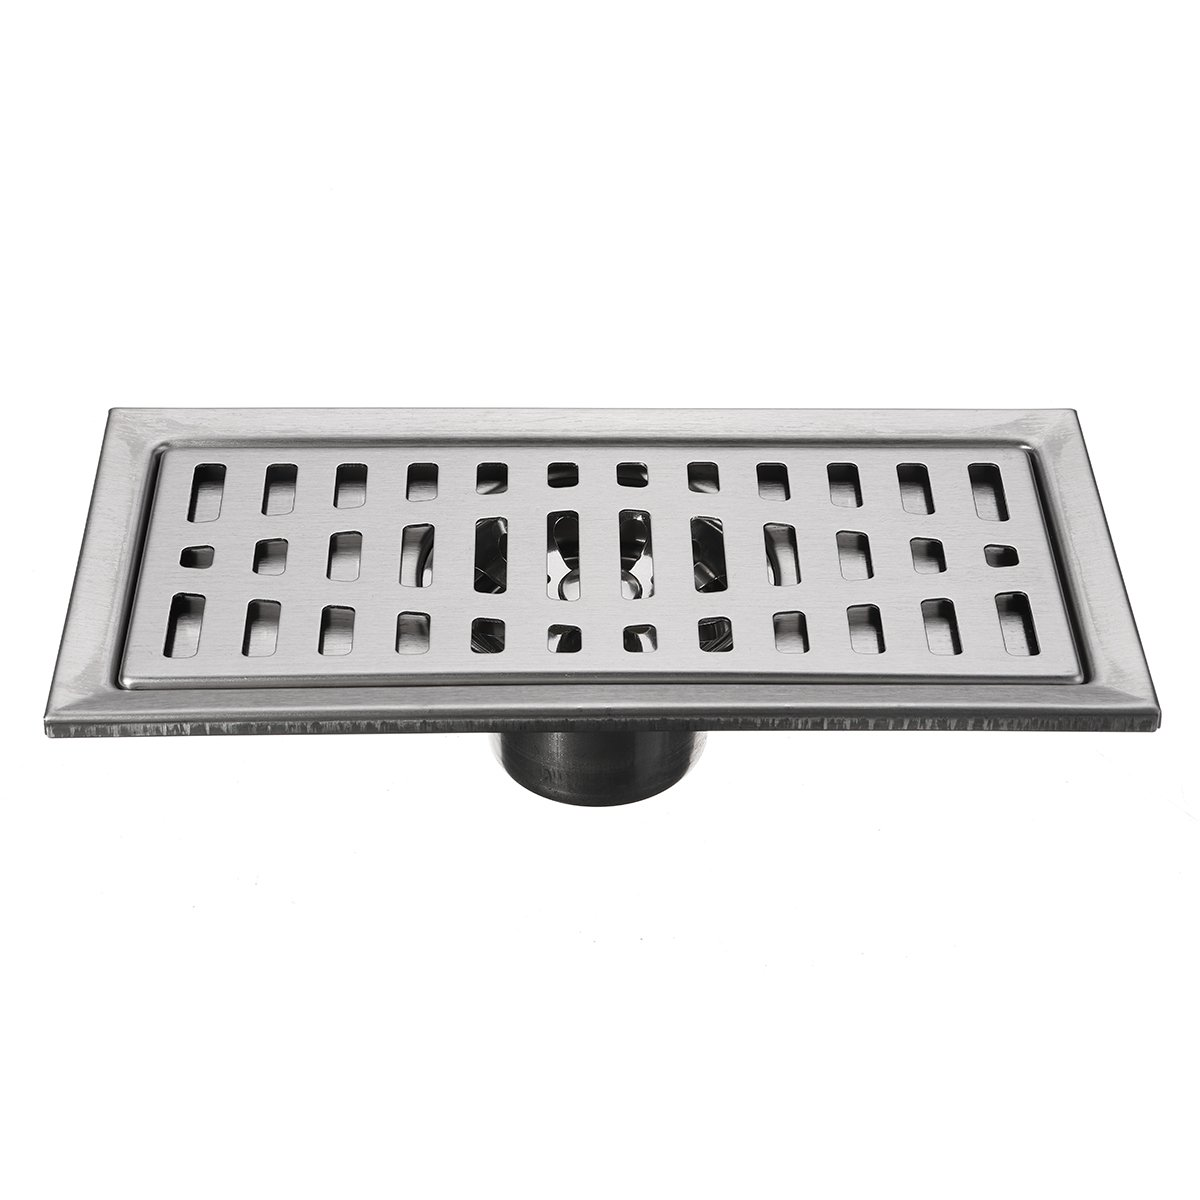 dDanke Stainless Steel Rectangular Bathroom Floor Drain Strainer with Removable Cover Drain Grate 20*10cm